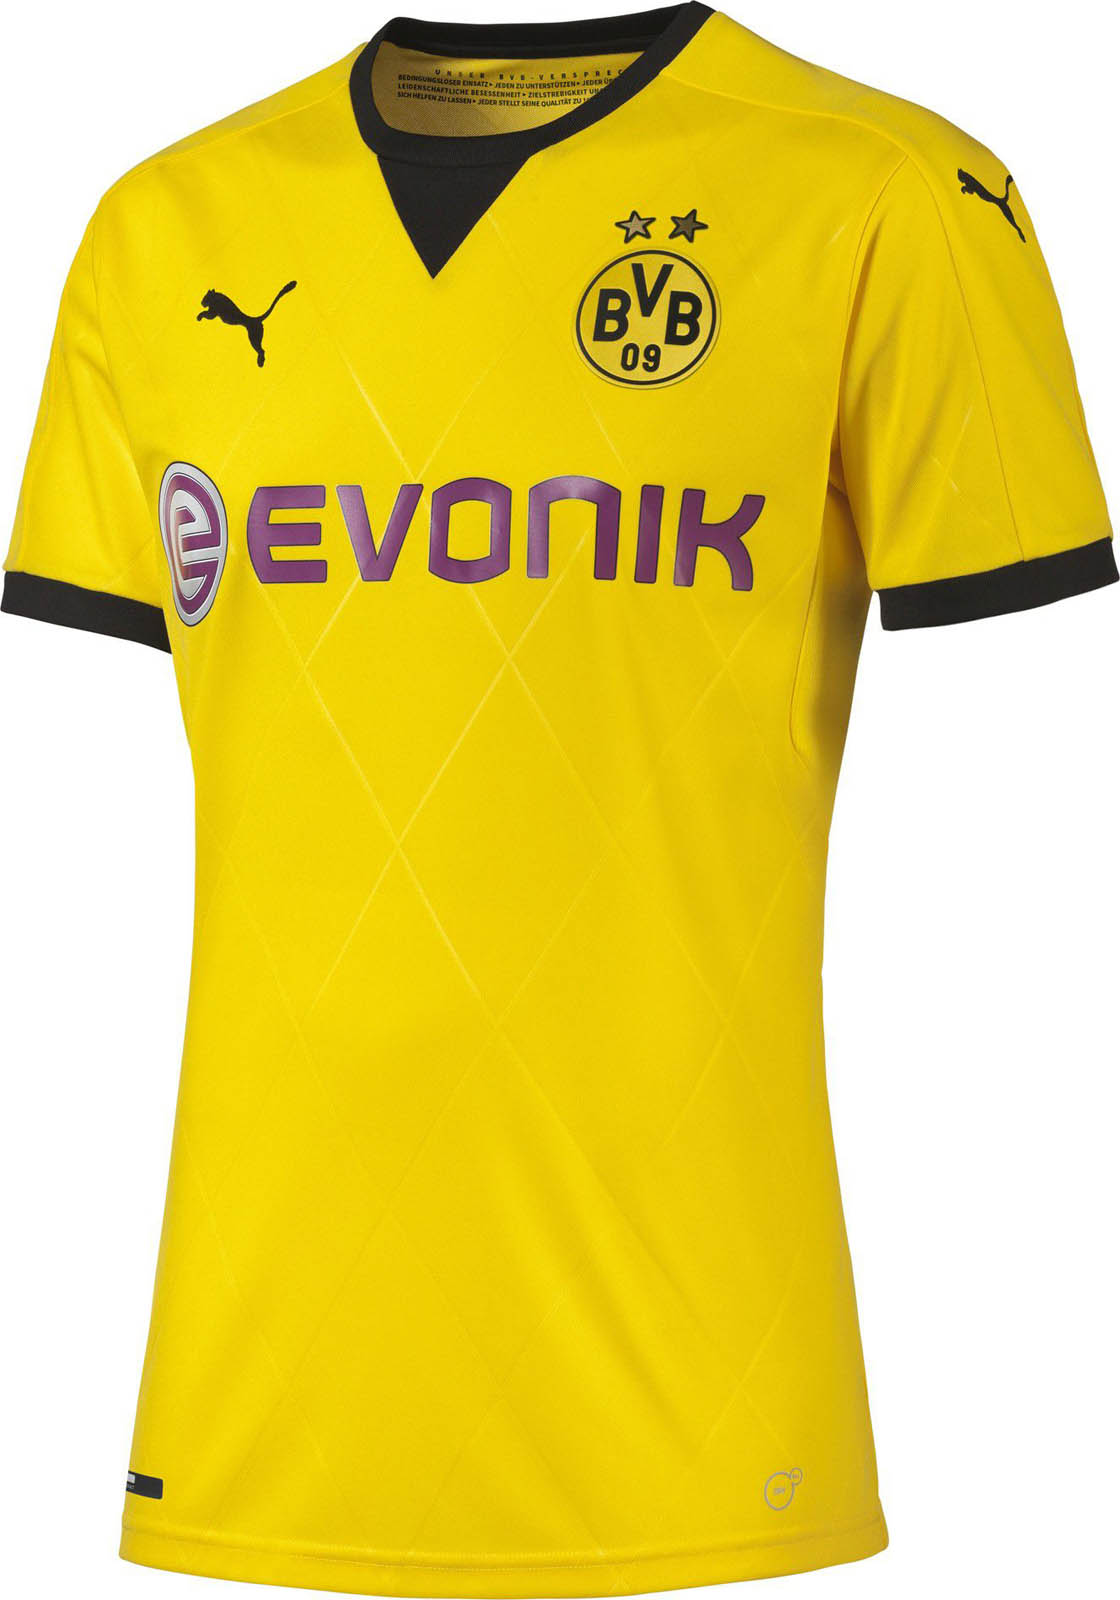 borussia dortmund euro league